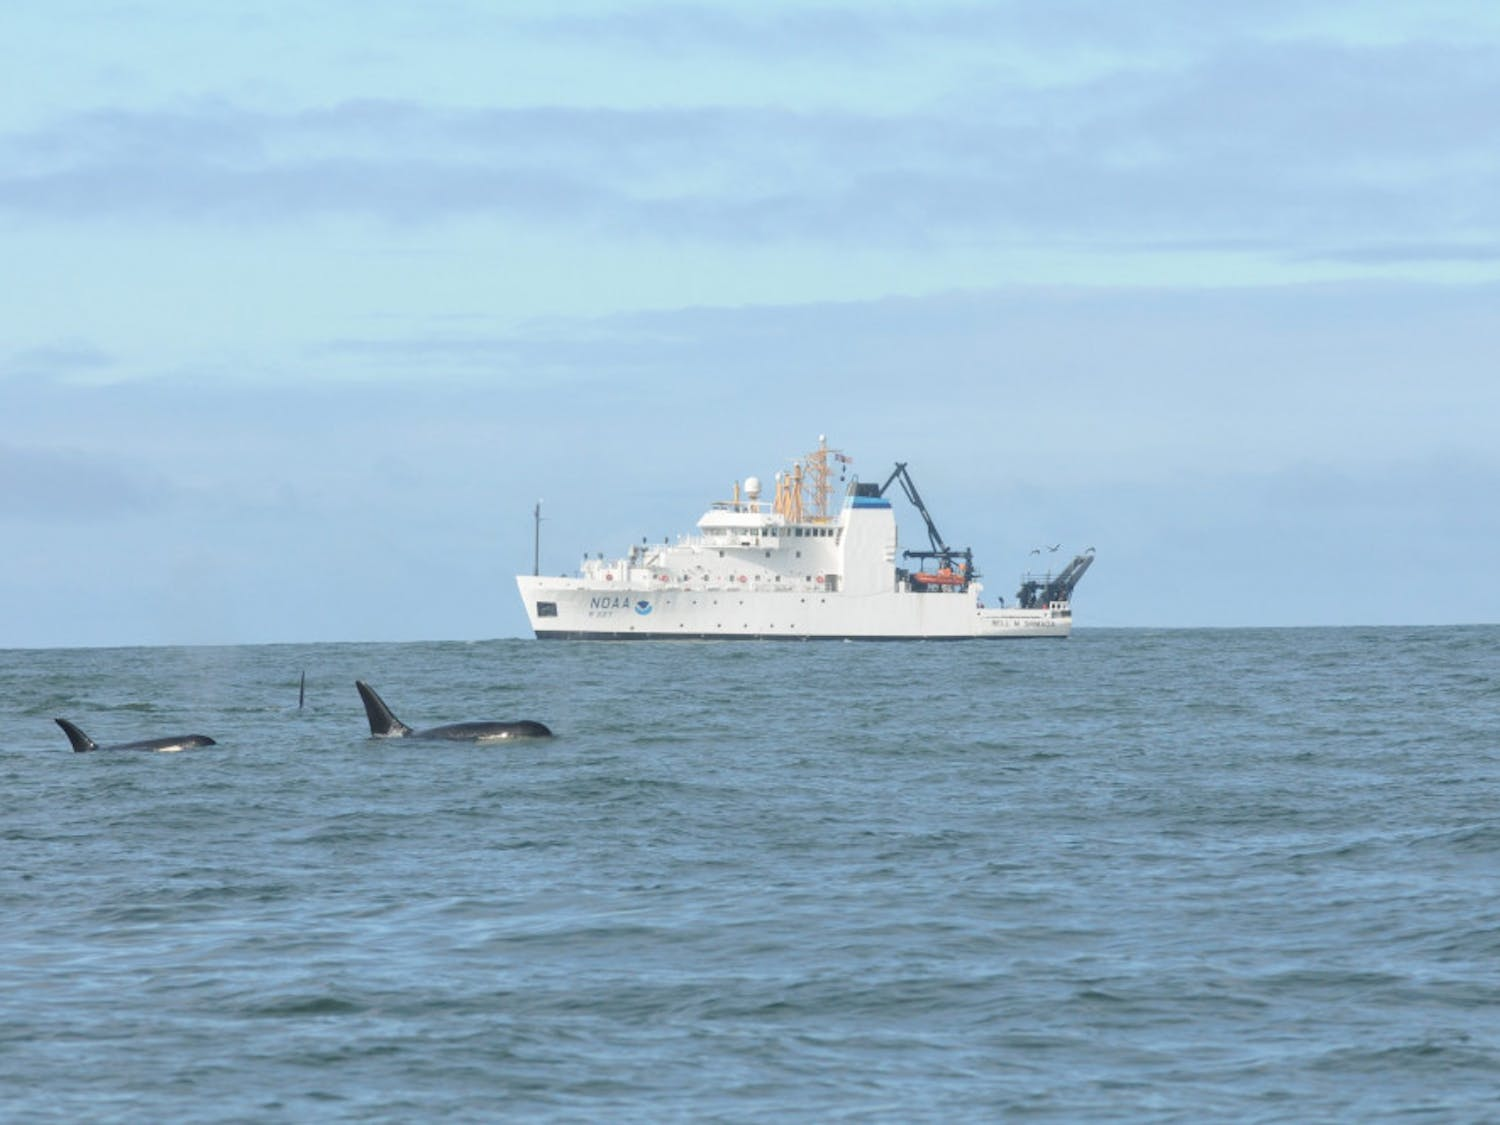 Southern Resident killer whales swim in front of a vessel. Transshipment and the export of crude oil continue to threaten the survival of this endangered species. // Photo courtesy of NOAA Fisheries via Flickr